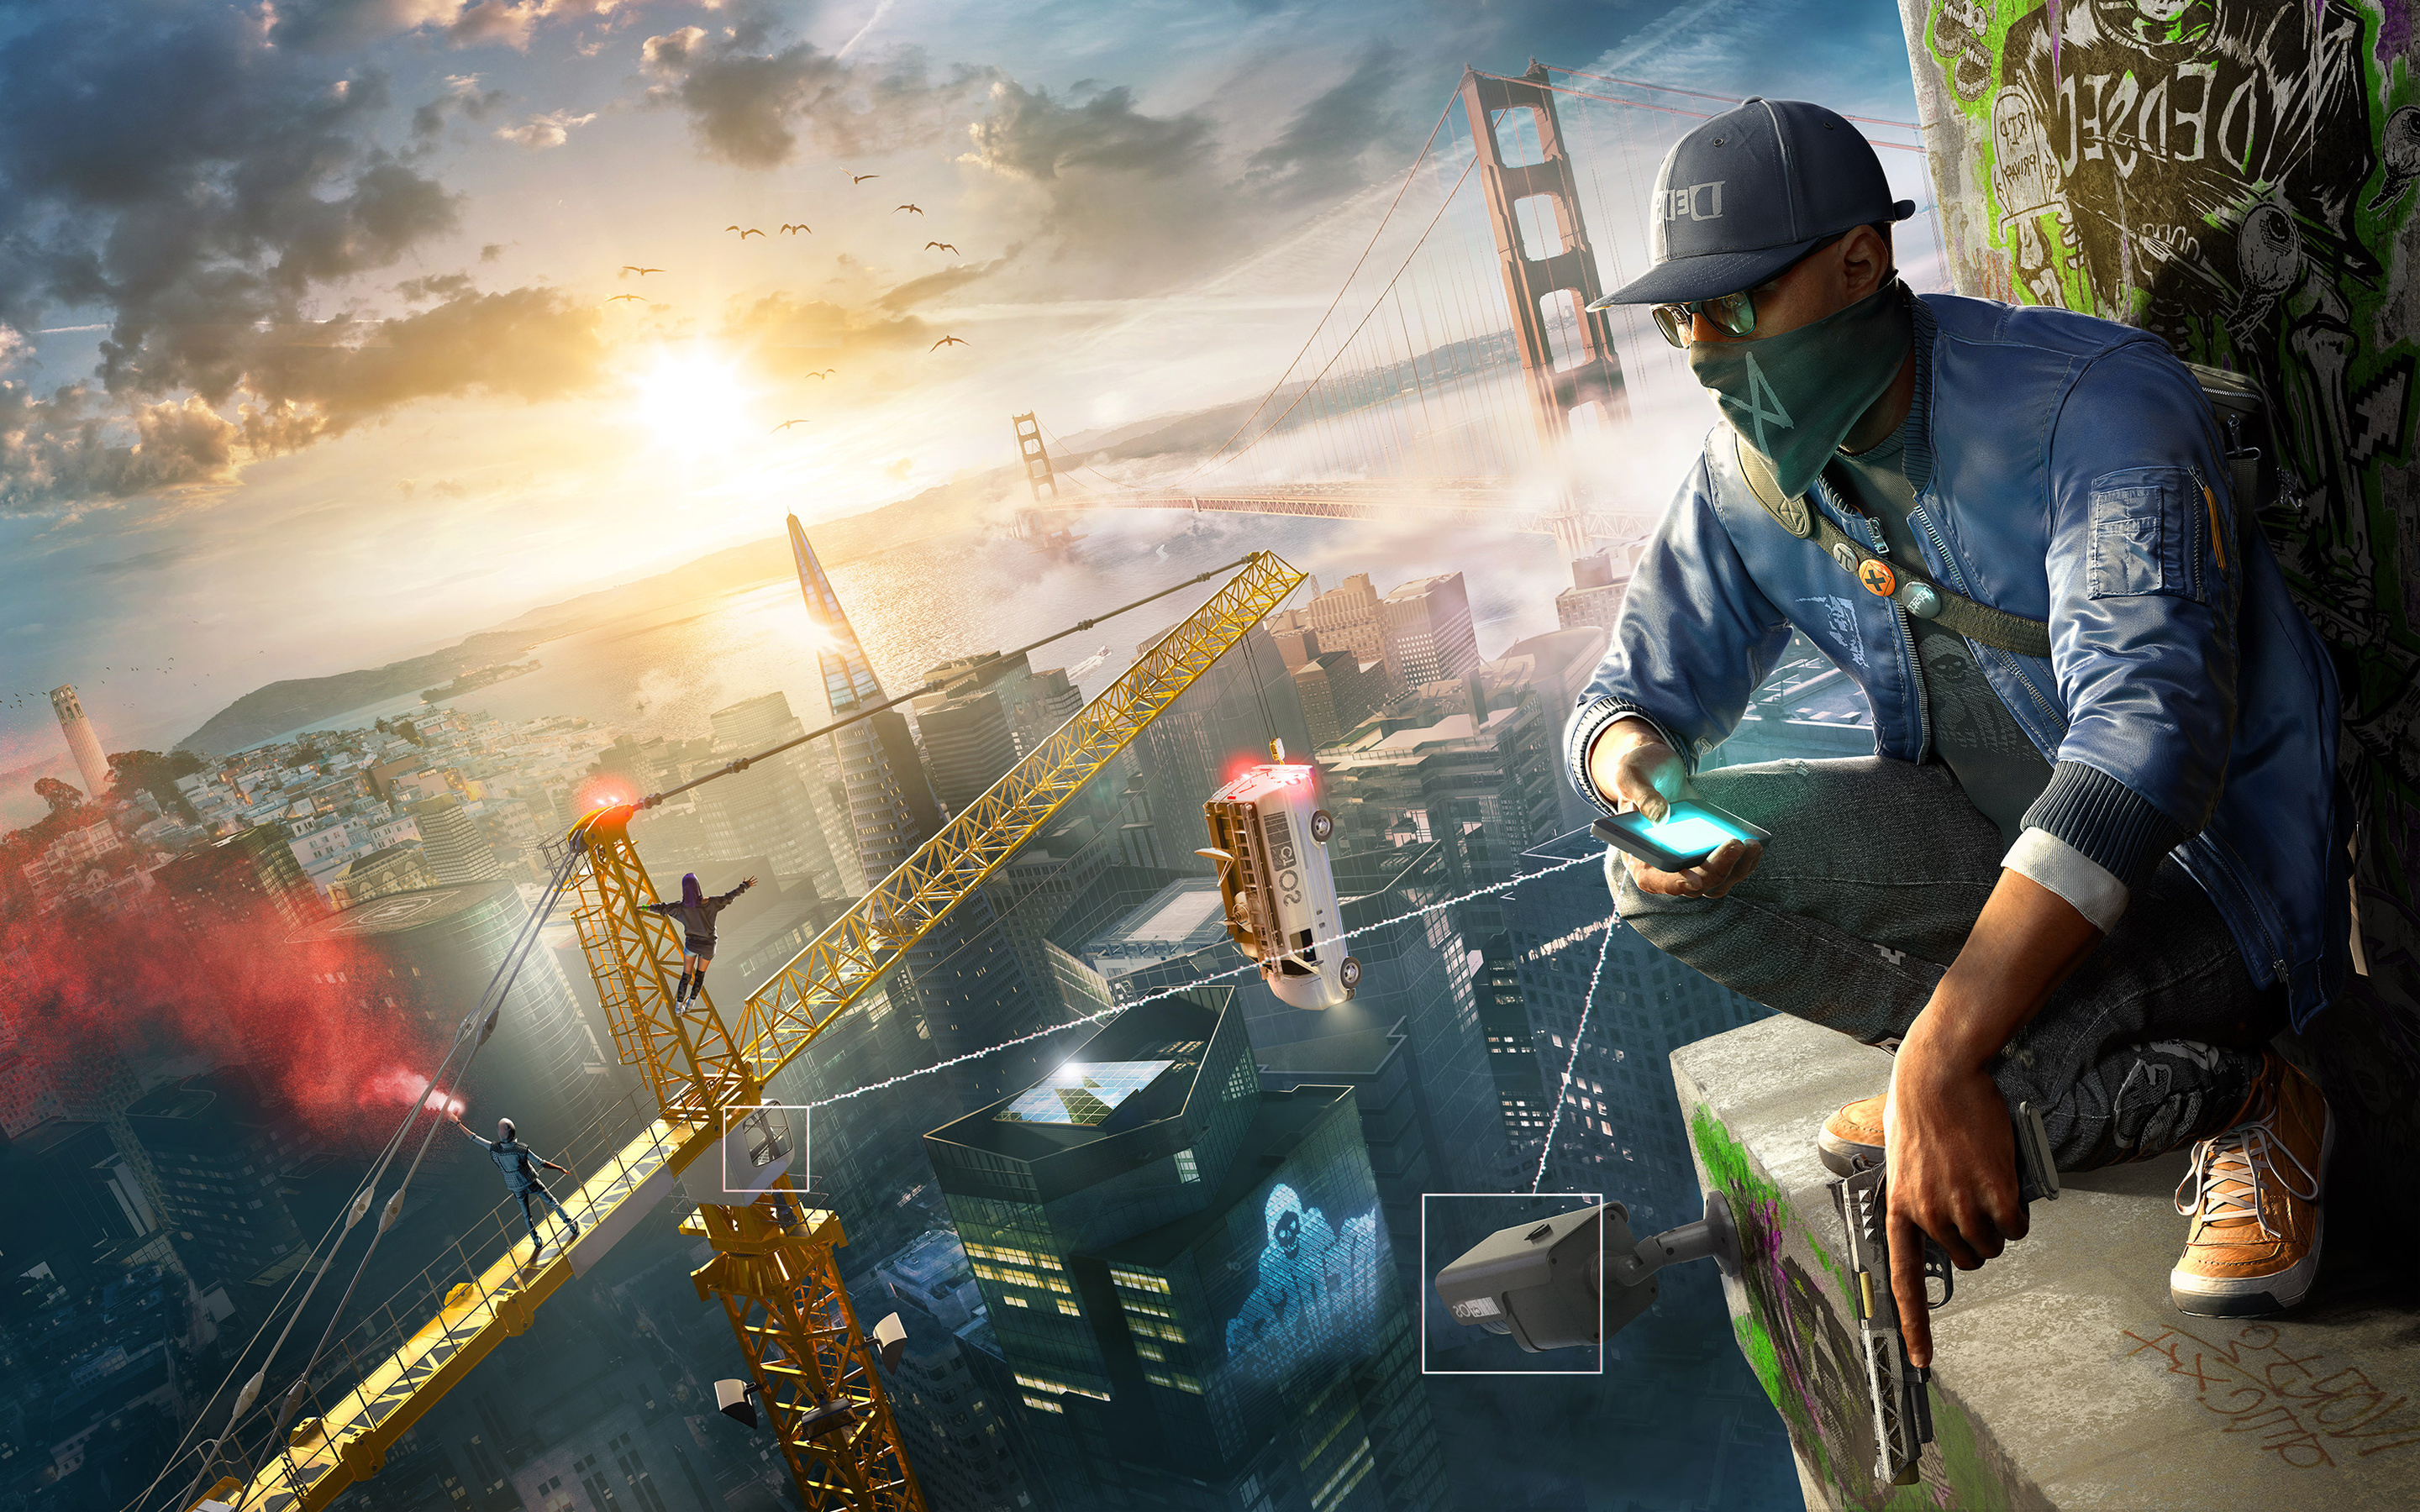 What Is Watch Dogs Rated